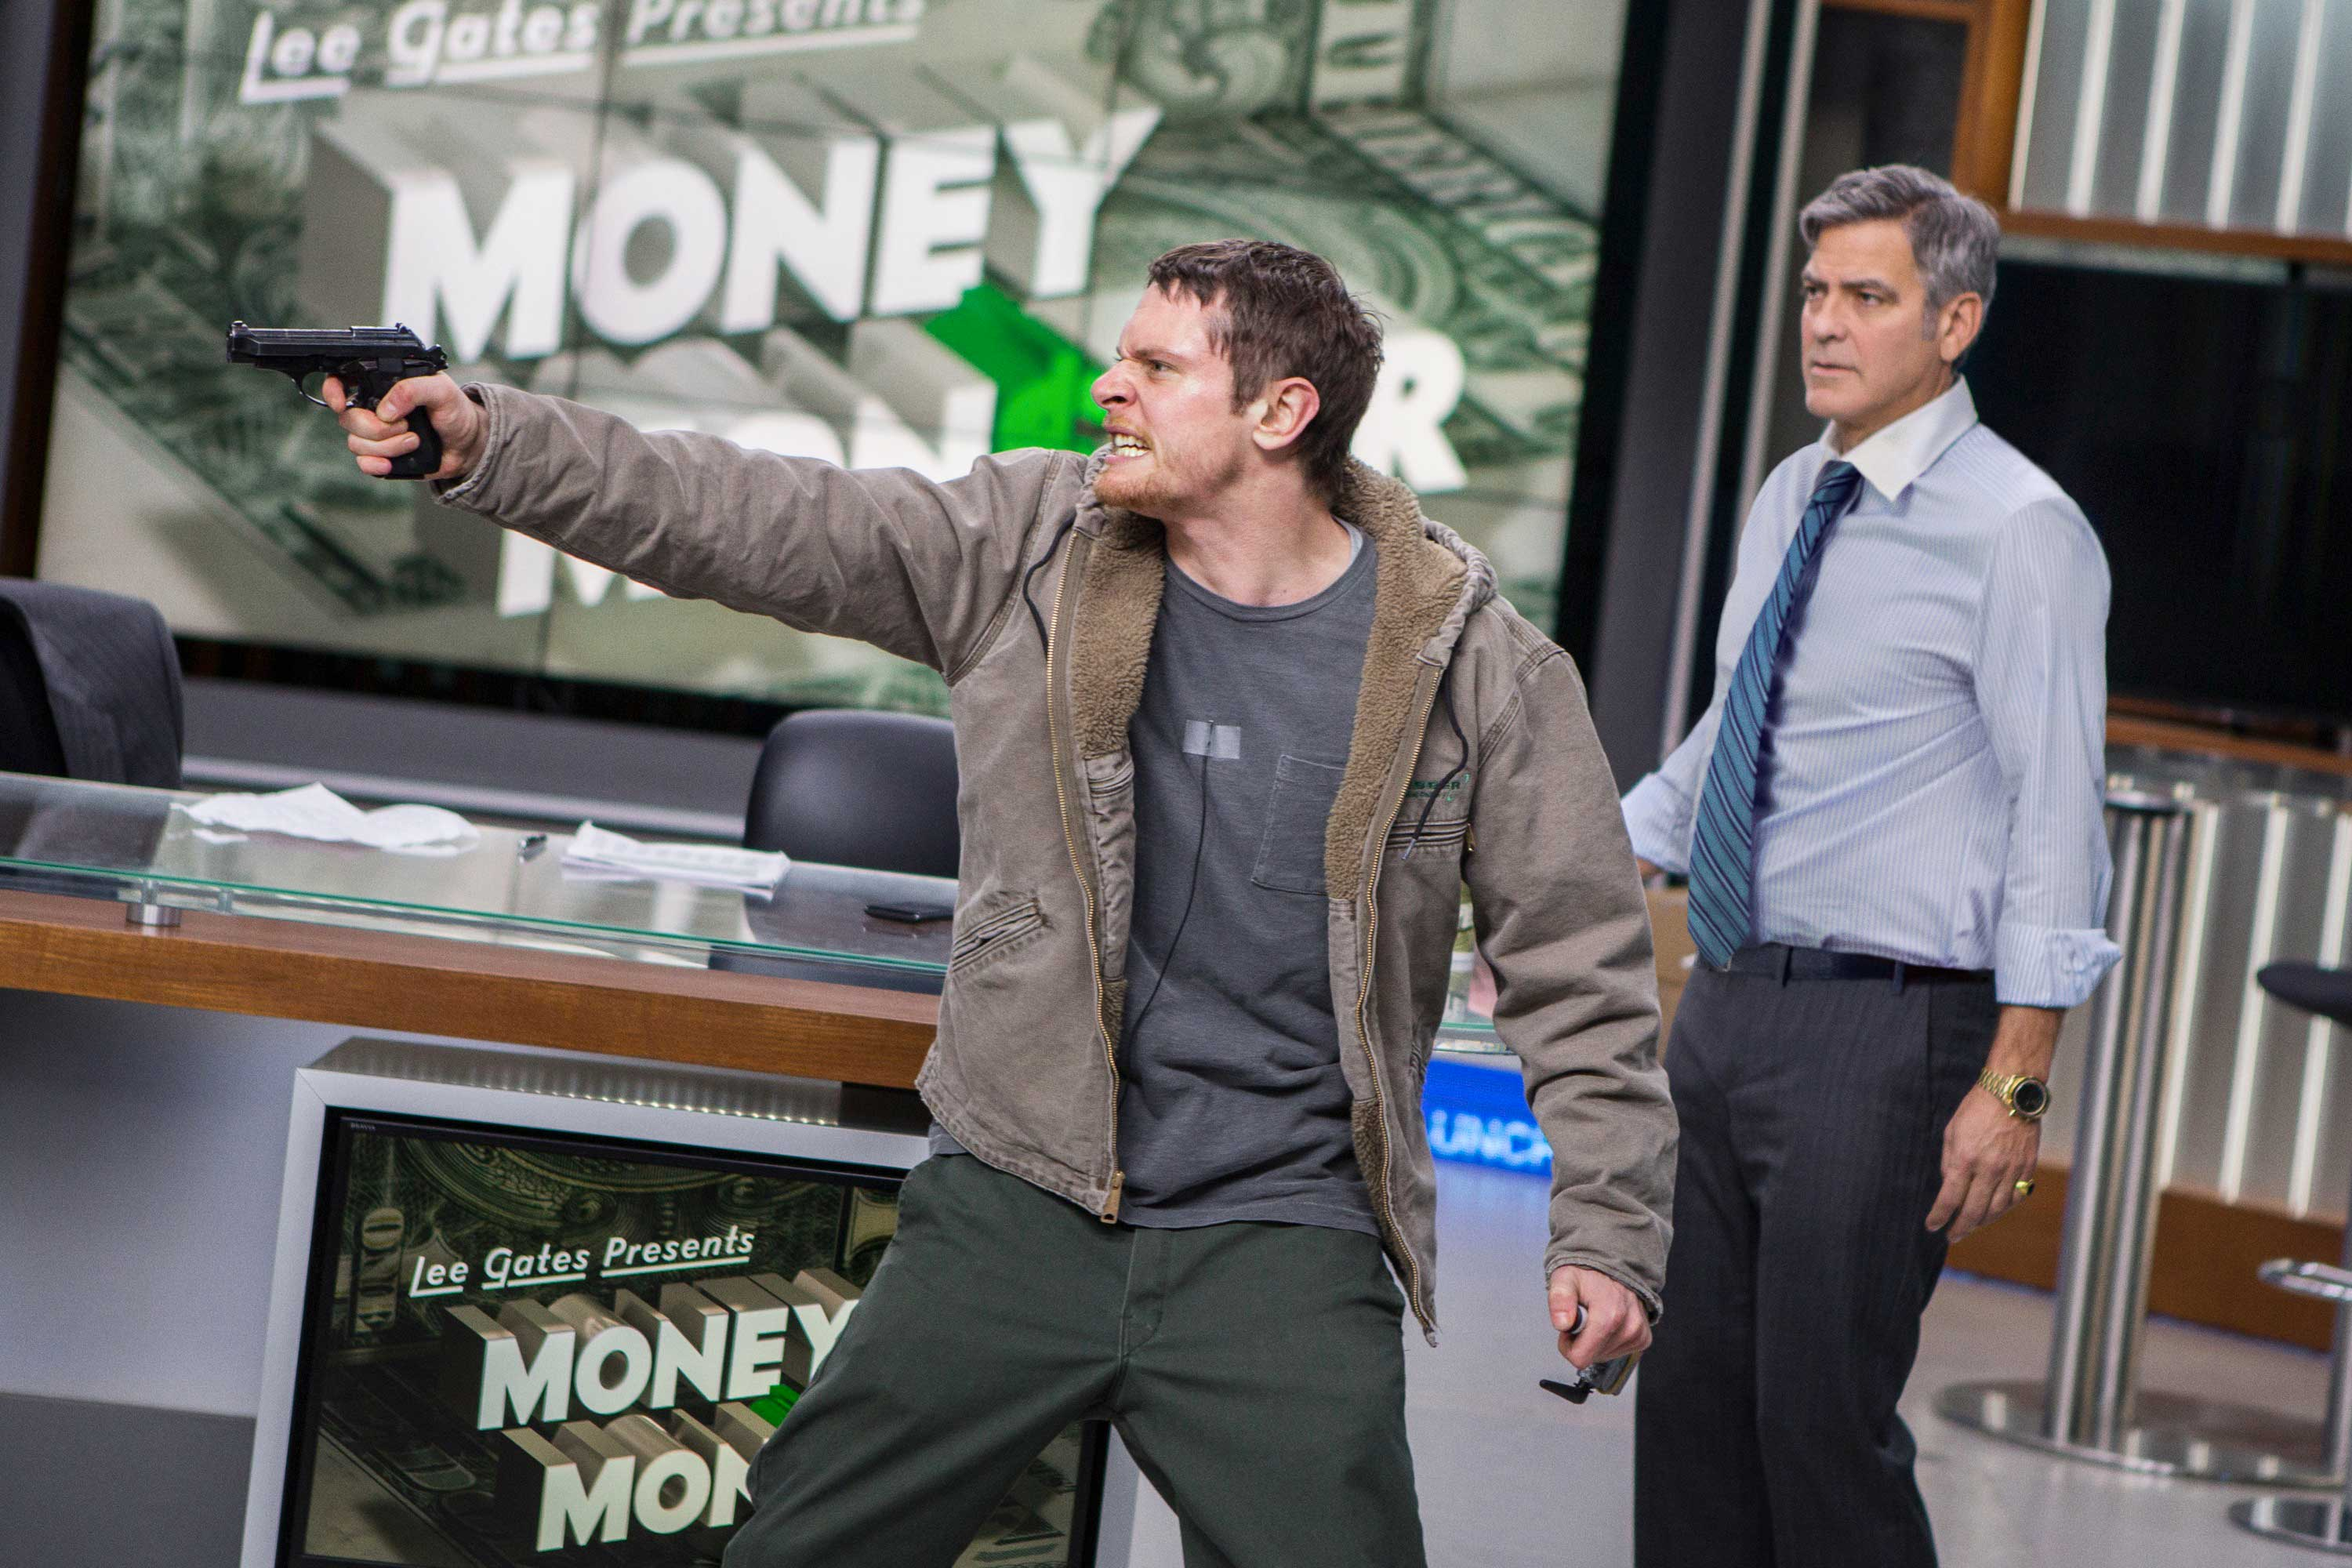 Why Money Monster will make you mad as hell